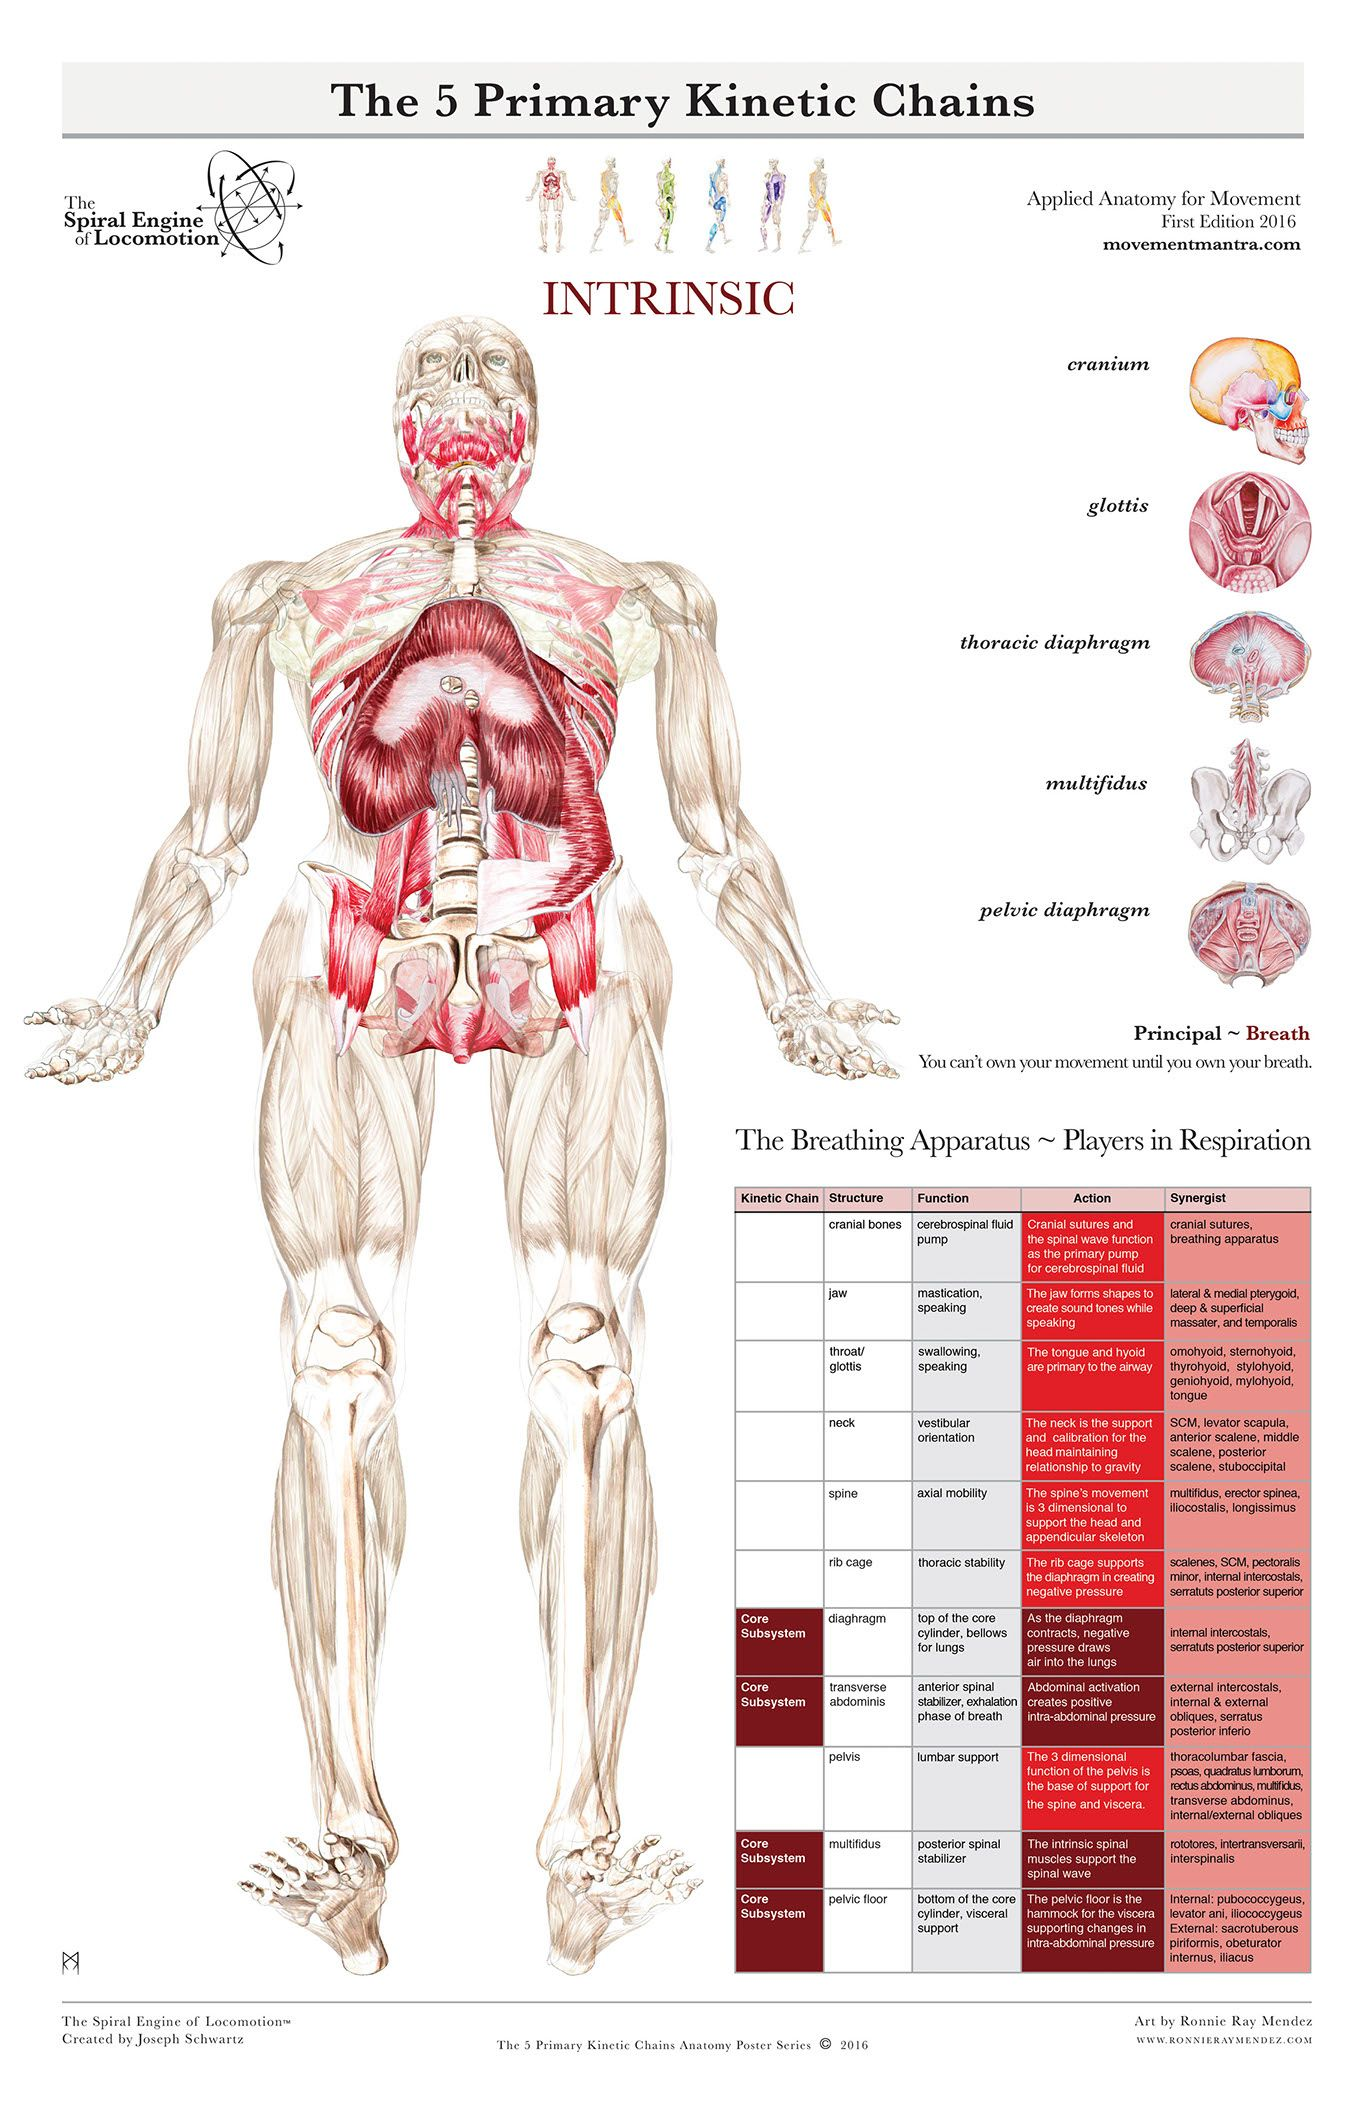 The Spiral Engine Of Locomotion Functional Anatomy Pinterest